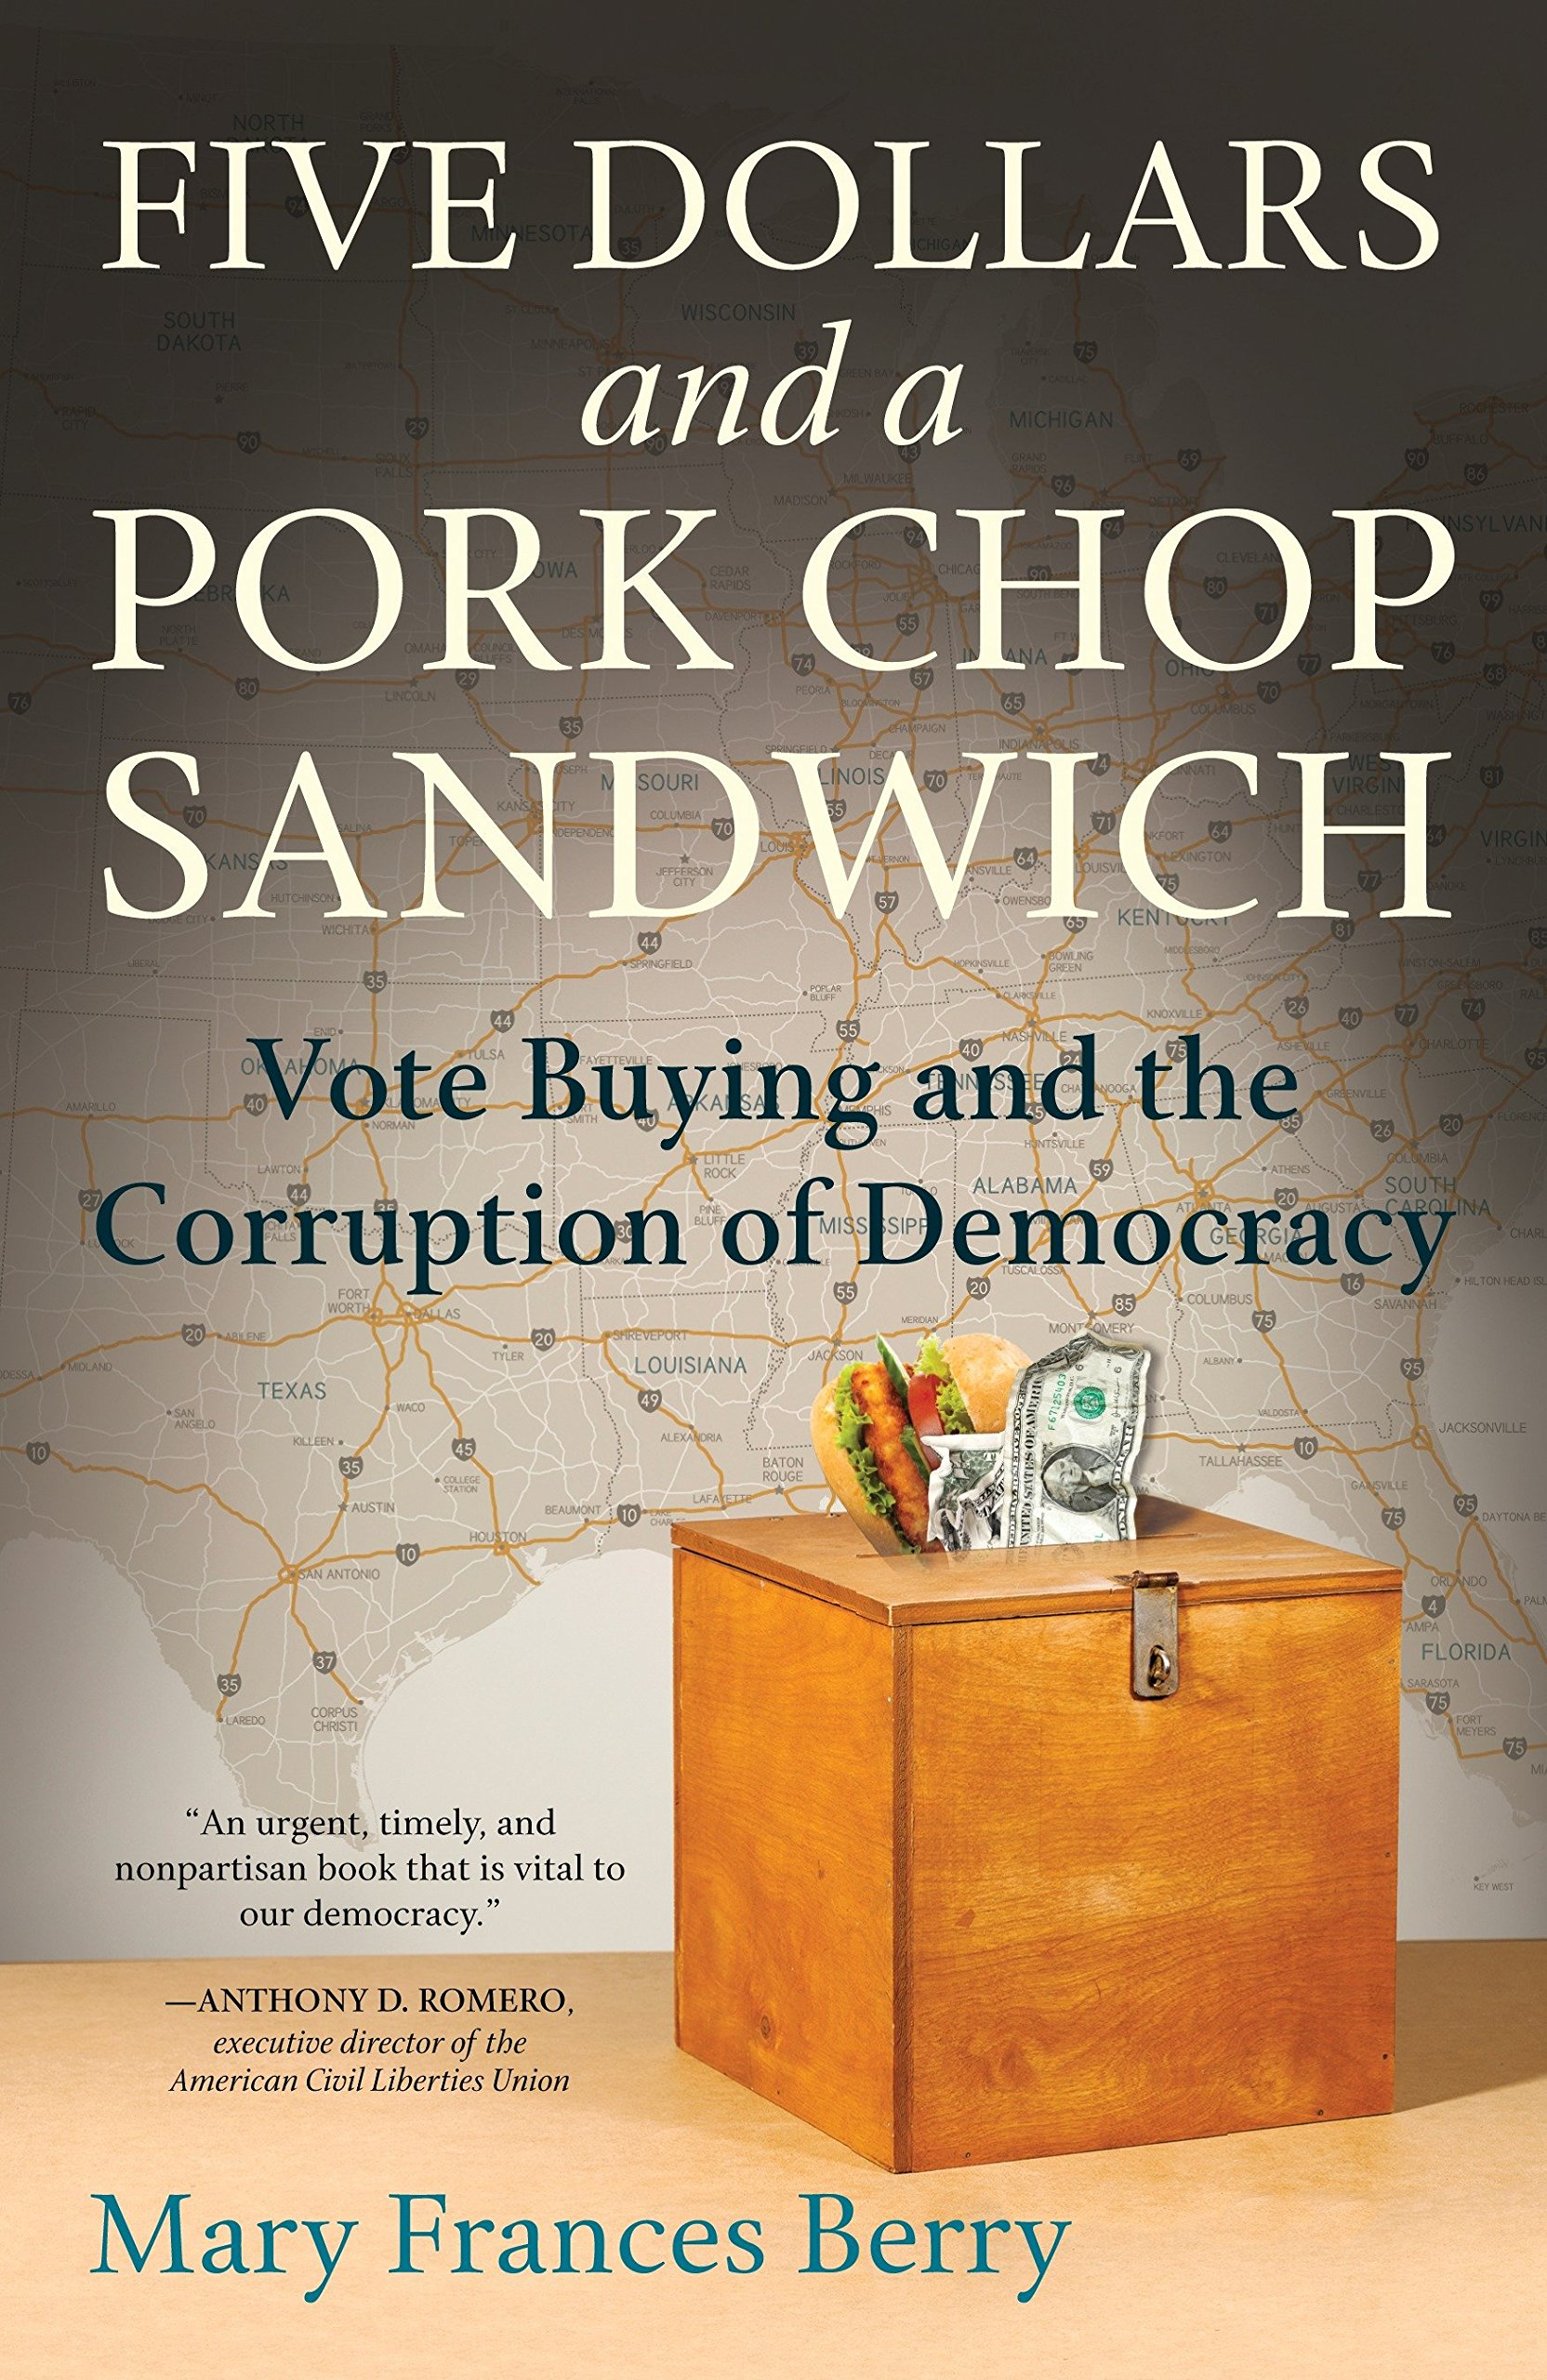 Five Dollars and a Pork Chop Sandwich: Vote Buying and the Corruption of  Democracy: Mary Frances Berry: 9780807061985: Amazon.com: Books